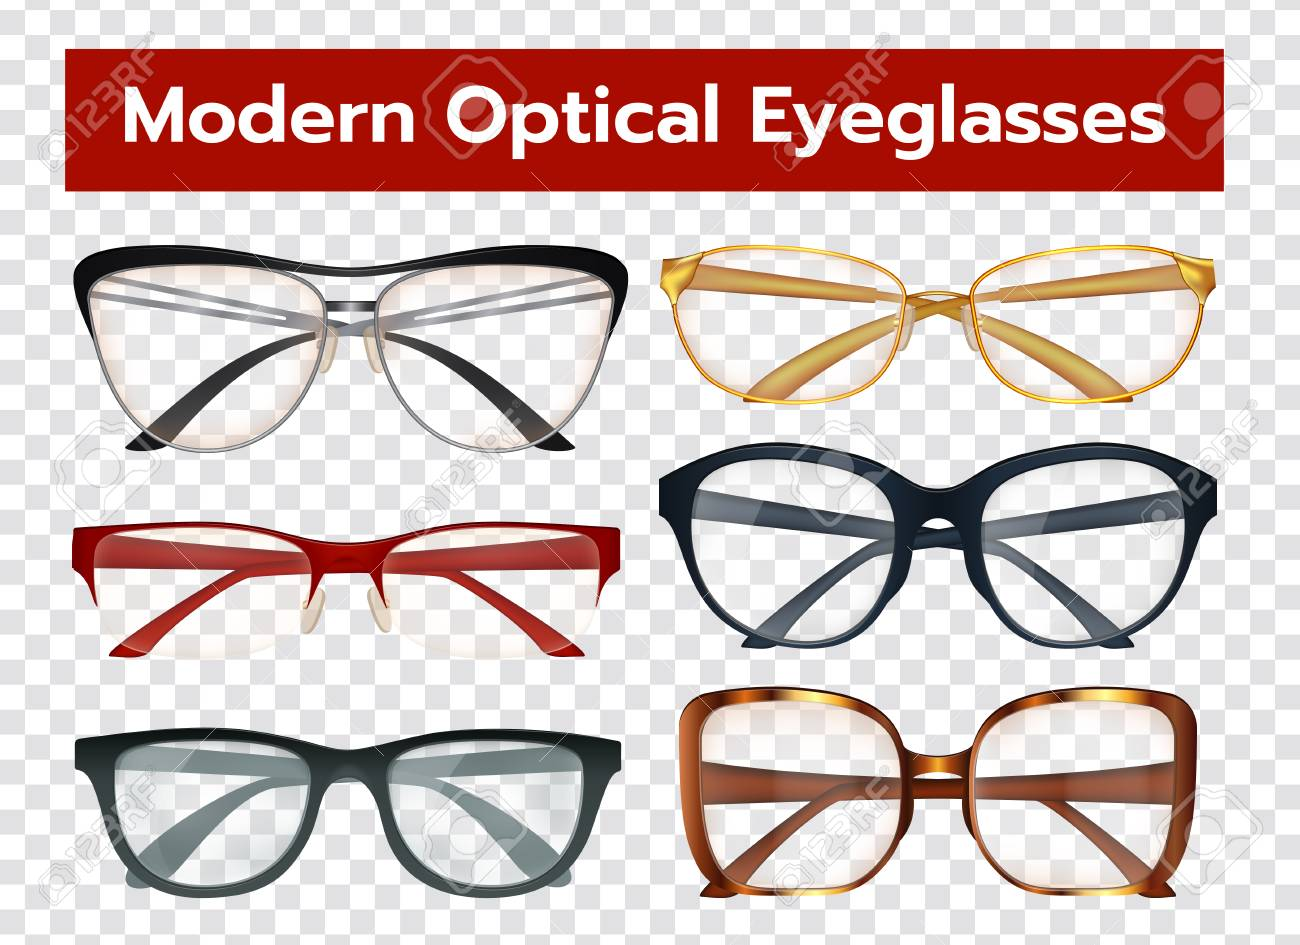 Classic Modern Optical Eyeglasses With Colorful Frames For Men